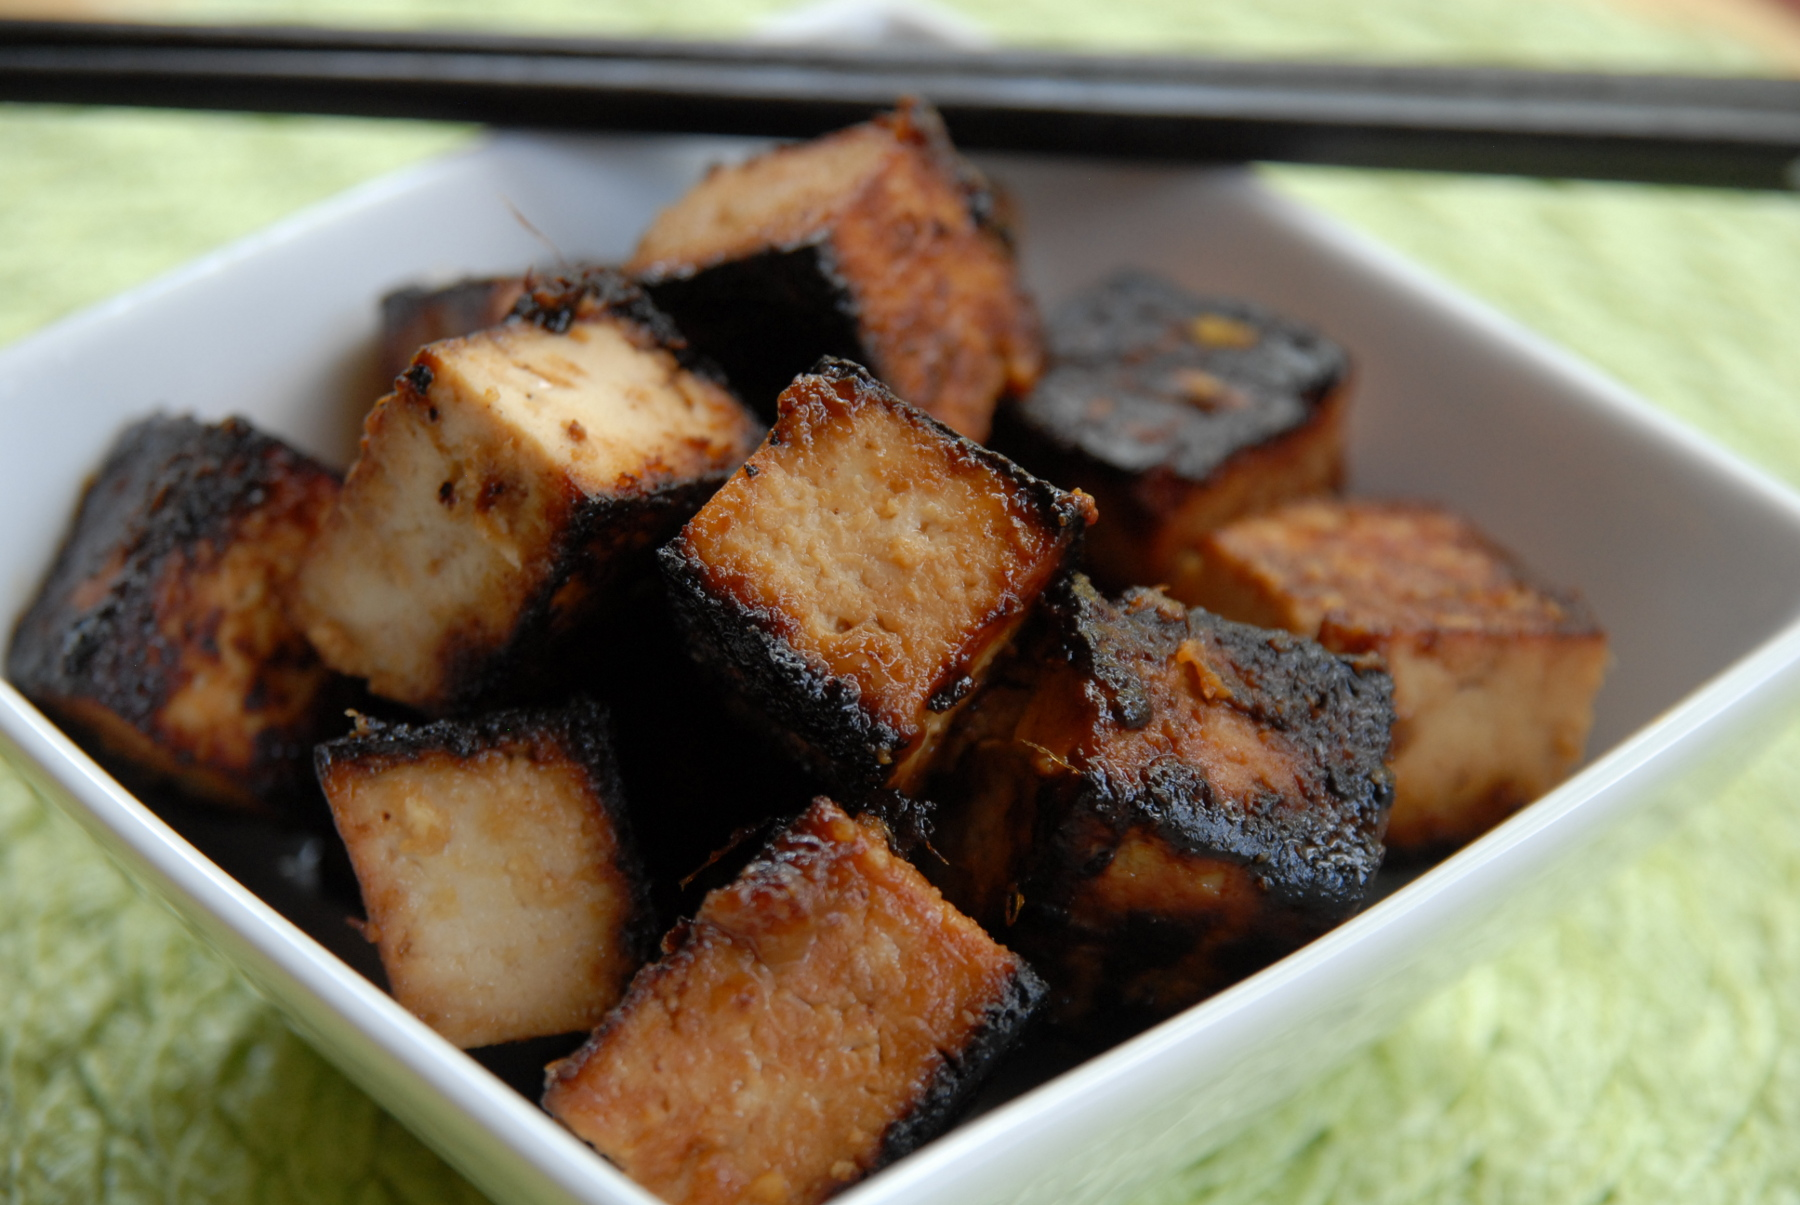 Japanese style fried tofu